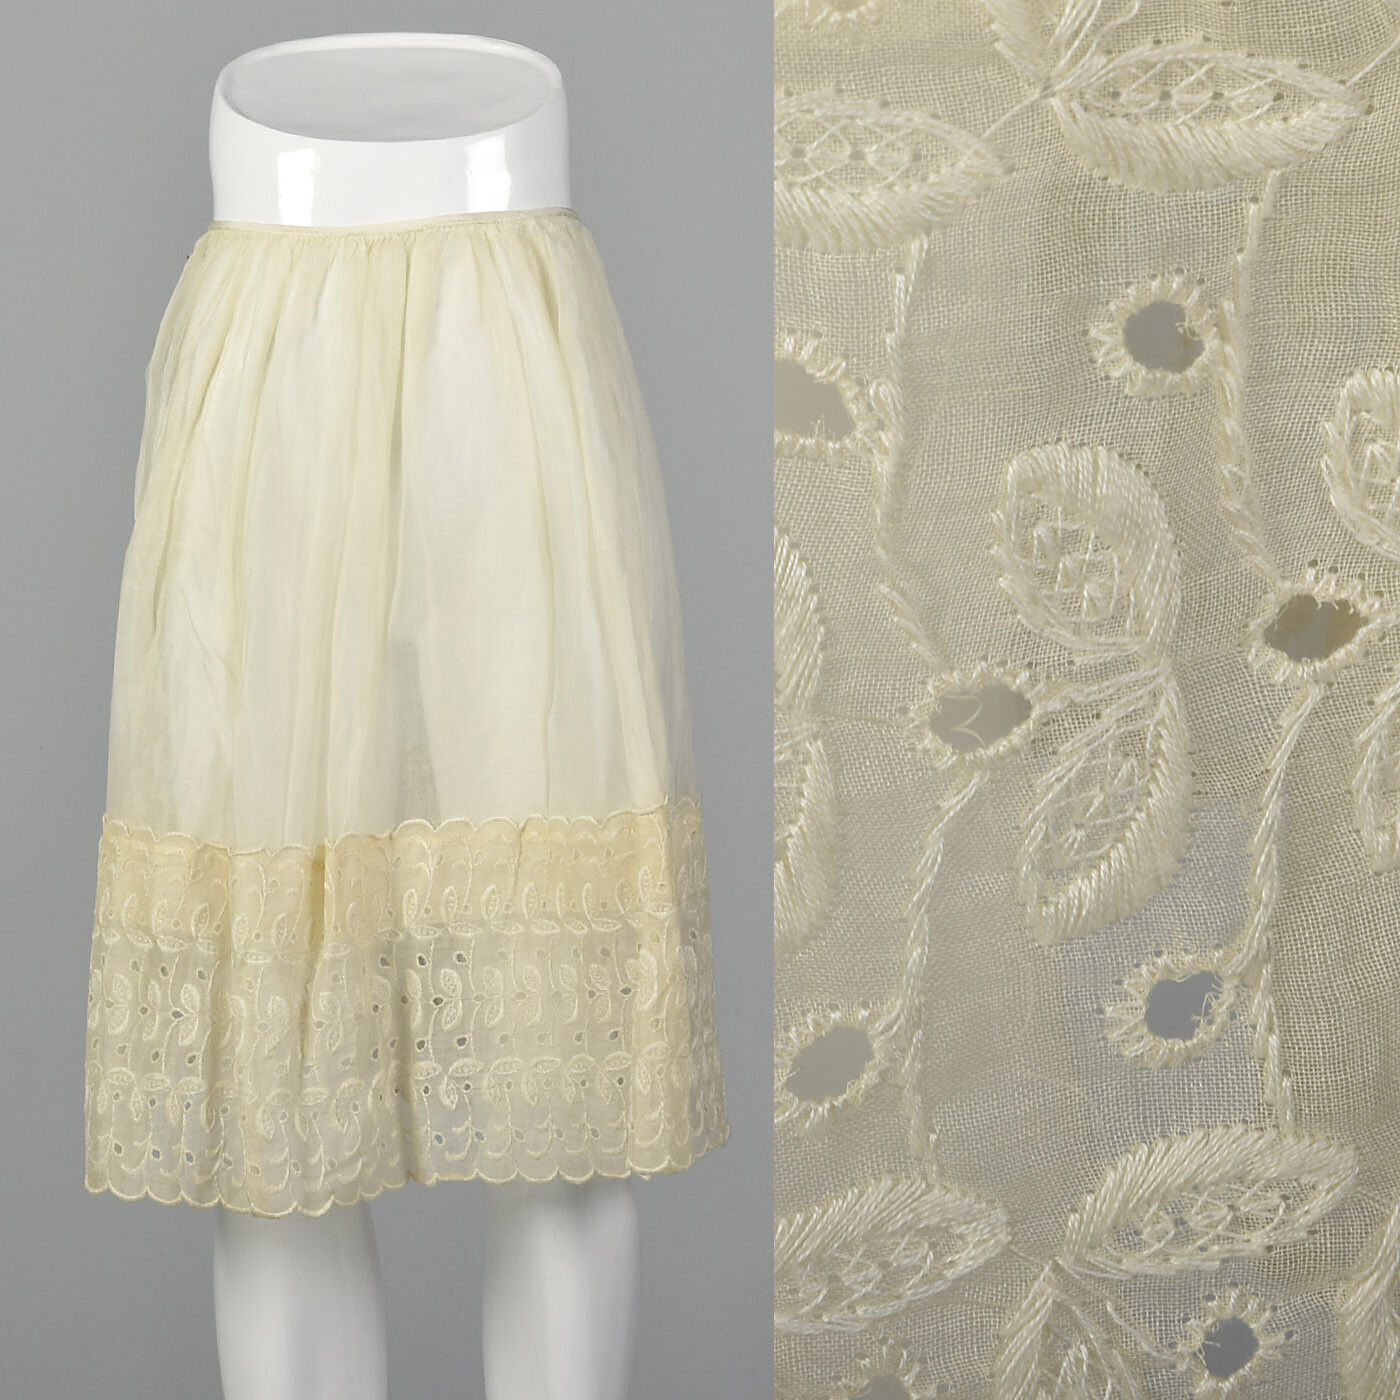 XXS 1950s Cotton Eyelet Slip Off White VTG Gathered Skirt Lingerie Petticoat